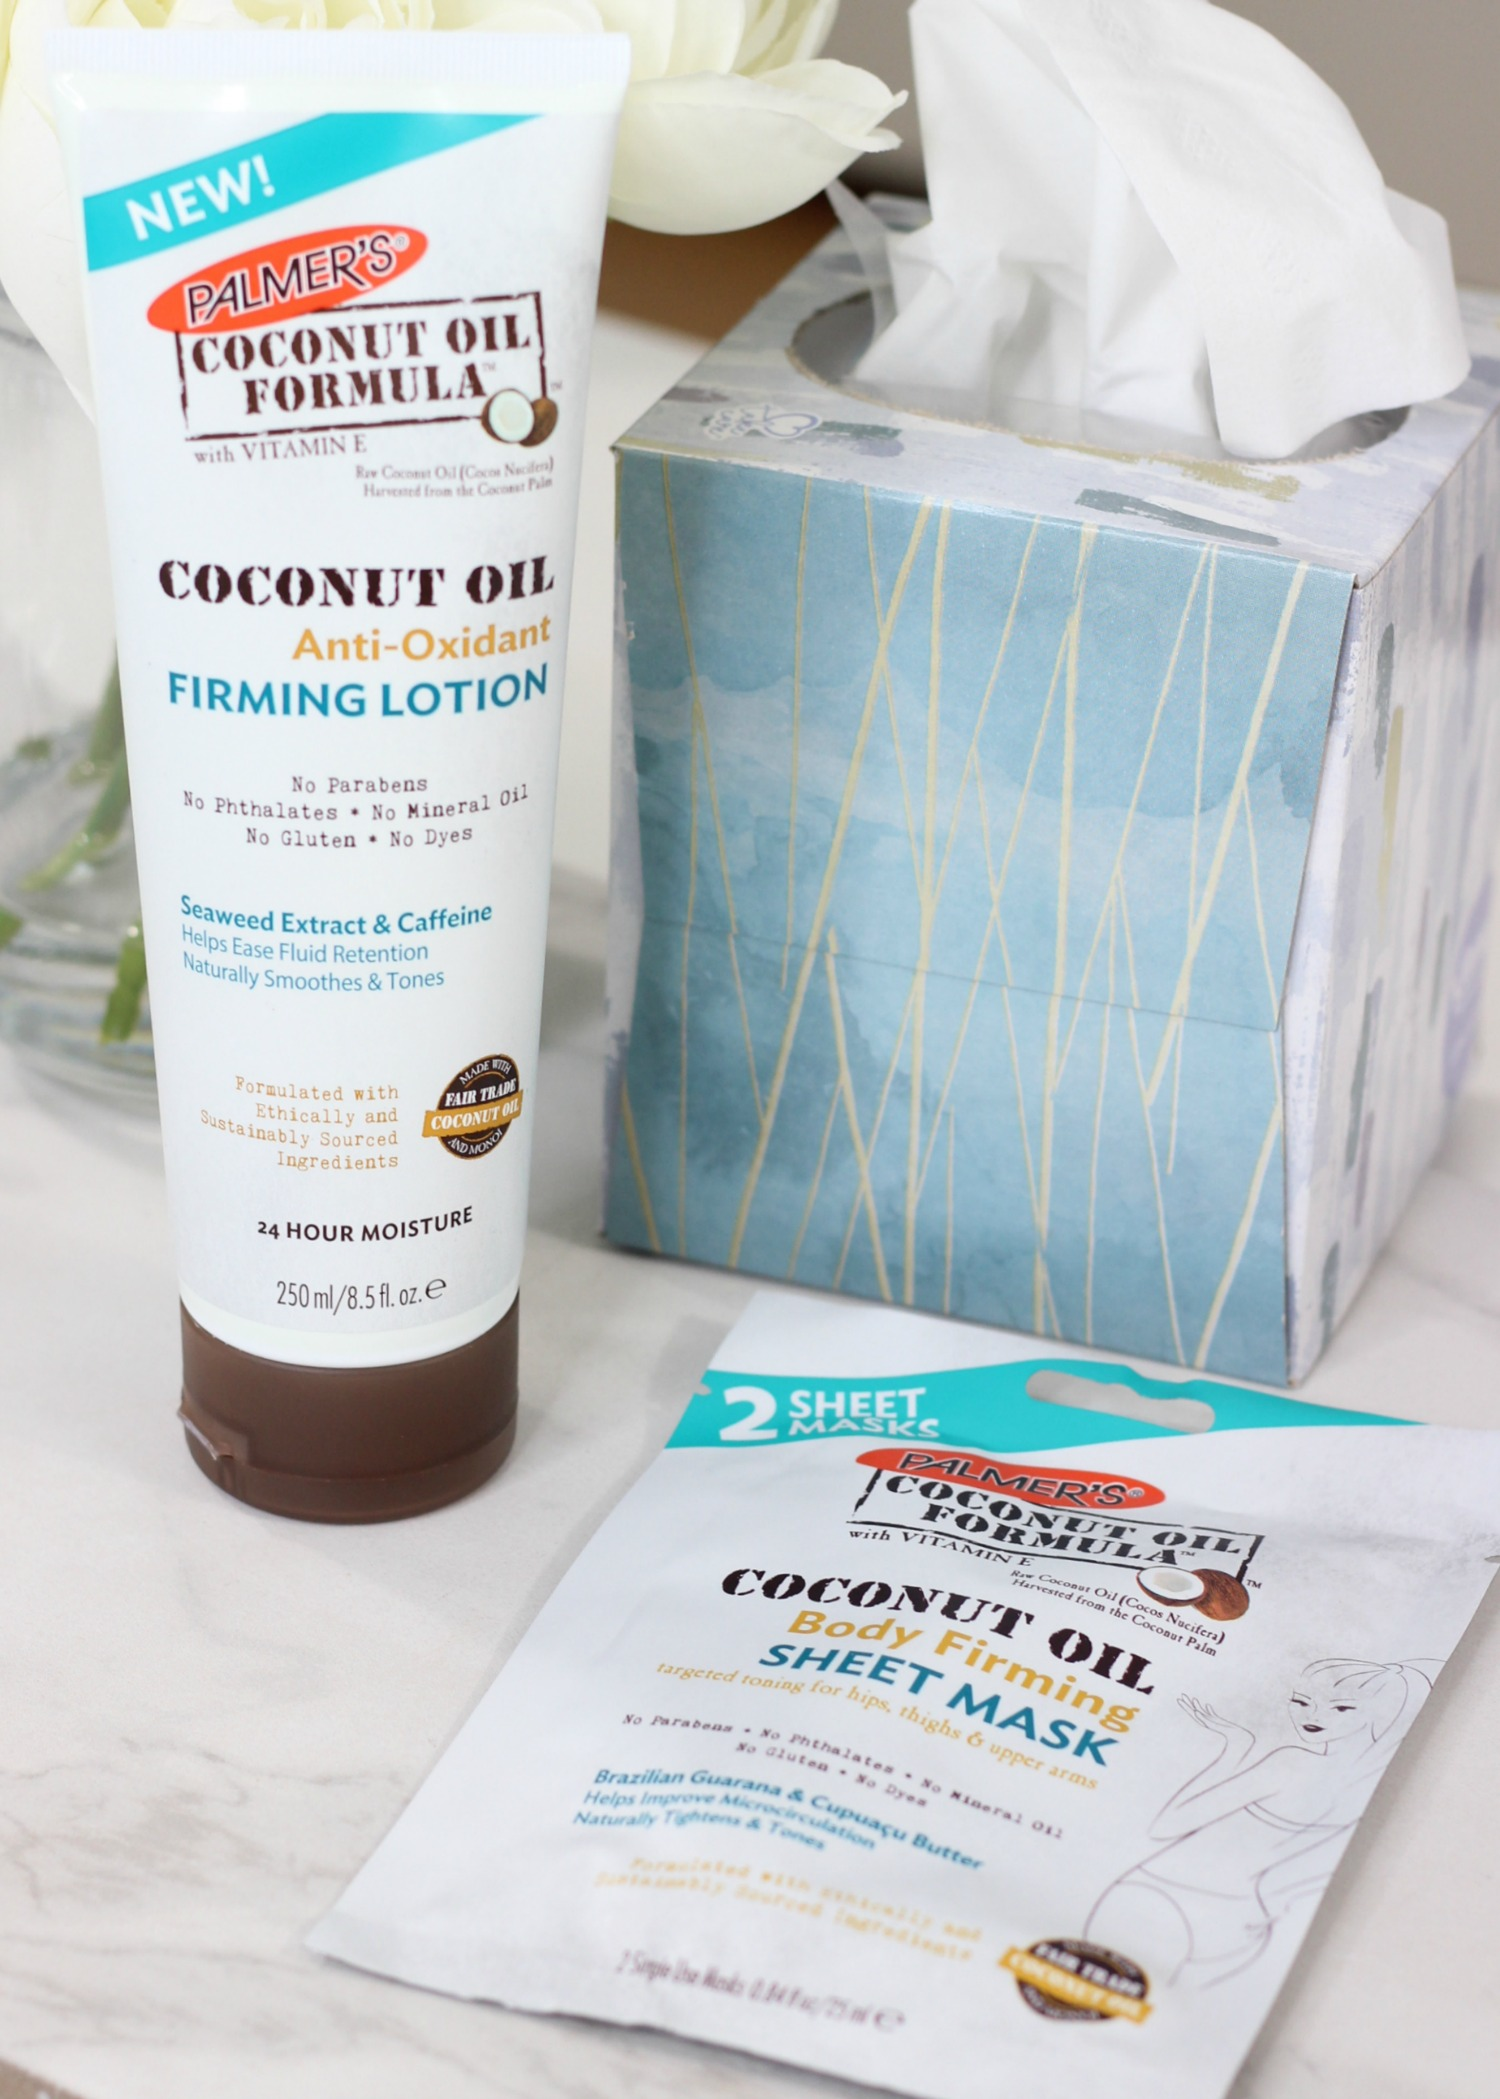 How I Keep My Skin Firm and Hydrated With Palmer's Body Firming Coconut Oil